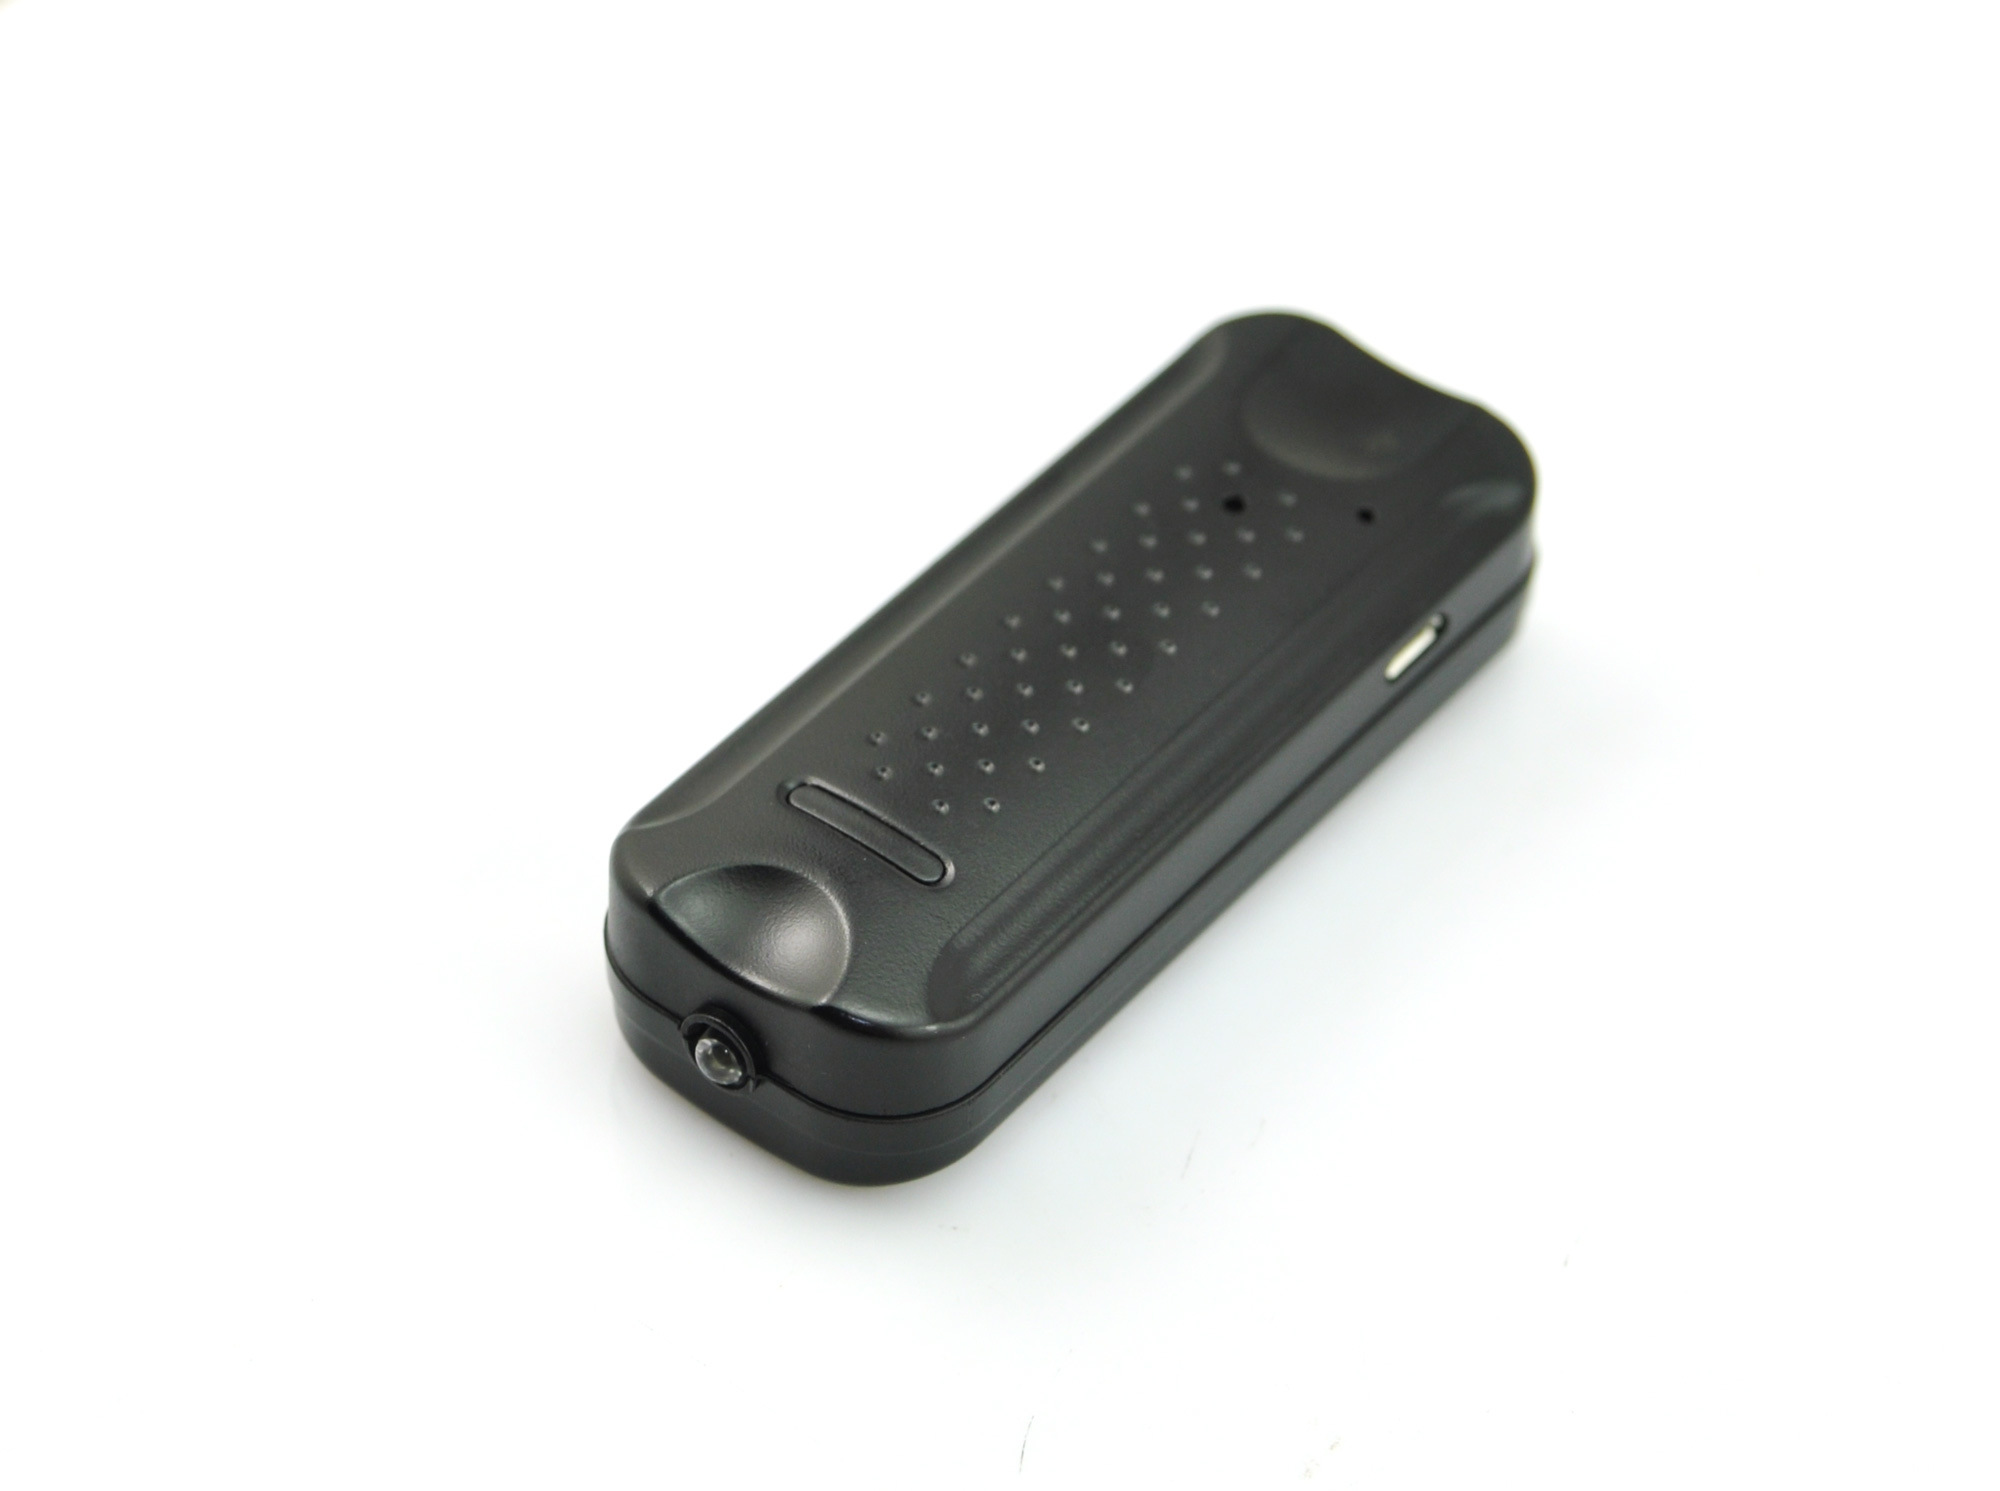 Q6voice Activated Magnetic Micro Hidden Voicerecorder Inside Mini LED Torch with 2000mAh Rechargeable Battery